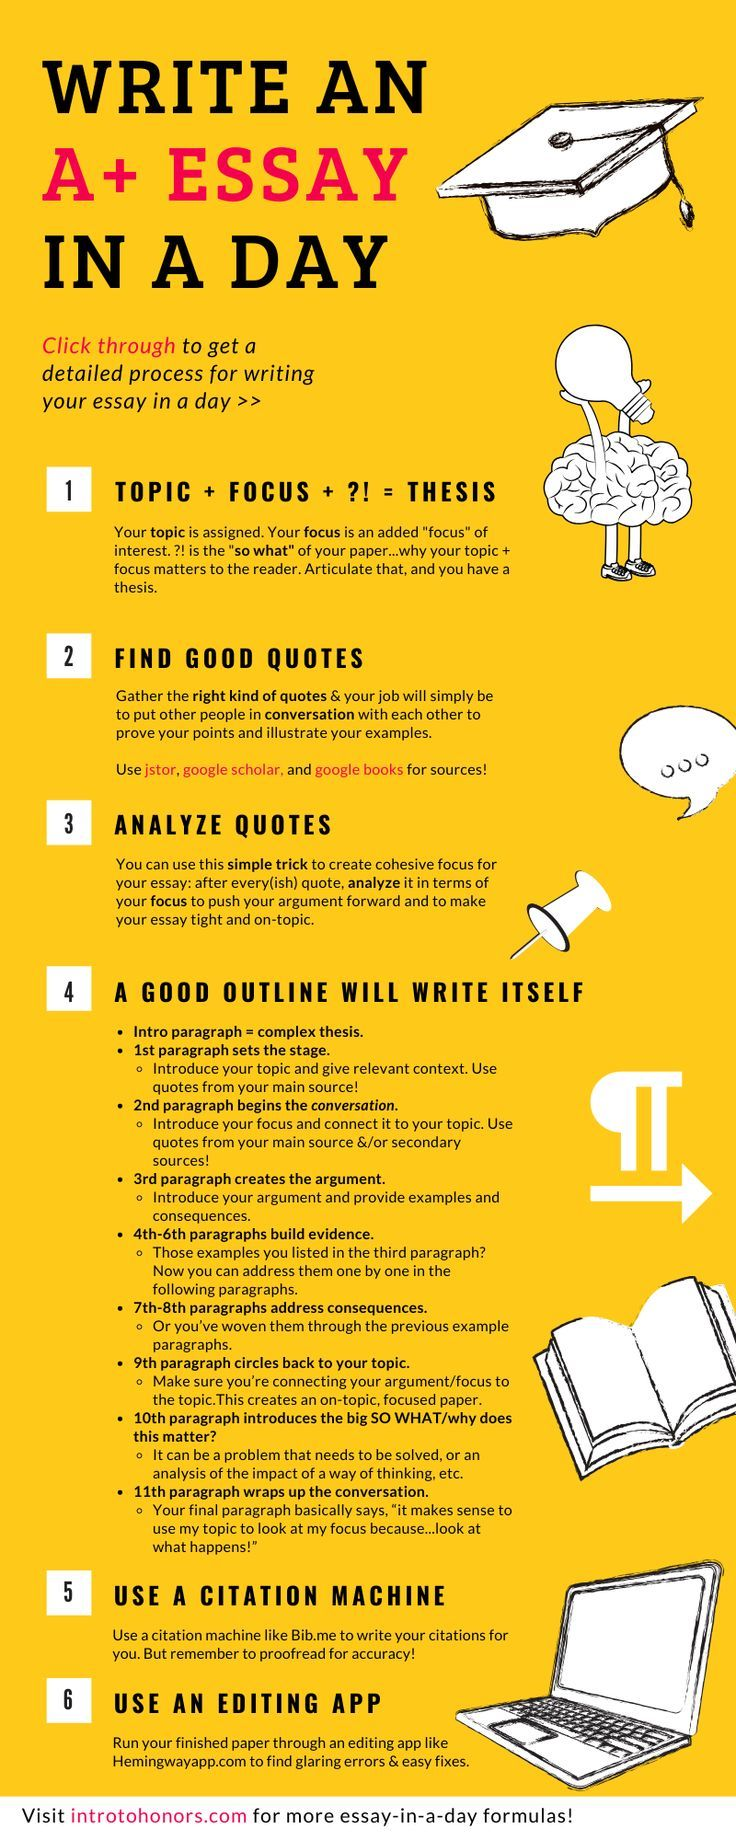 How To Write An A Essay In Day Writing Skill College Help Top Quality Essays